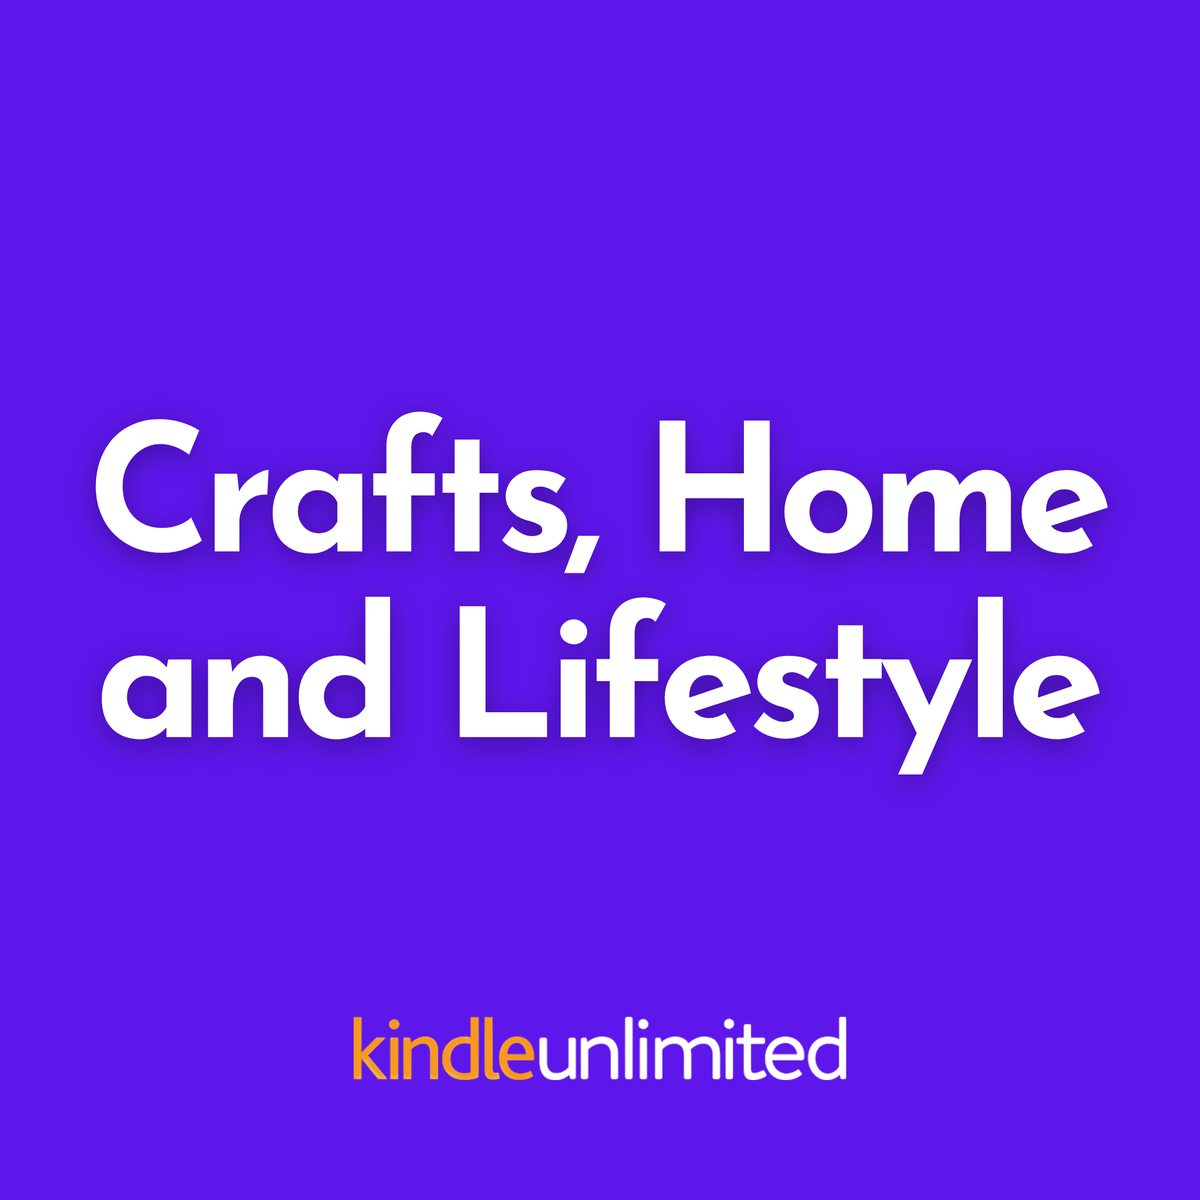 Crafts, Home and Lifestyle